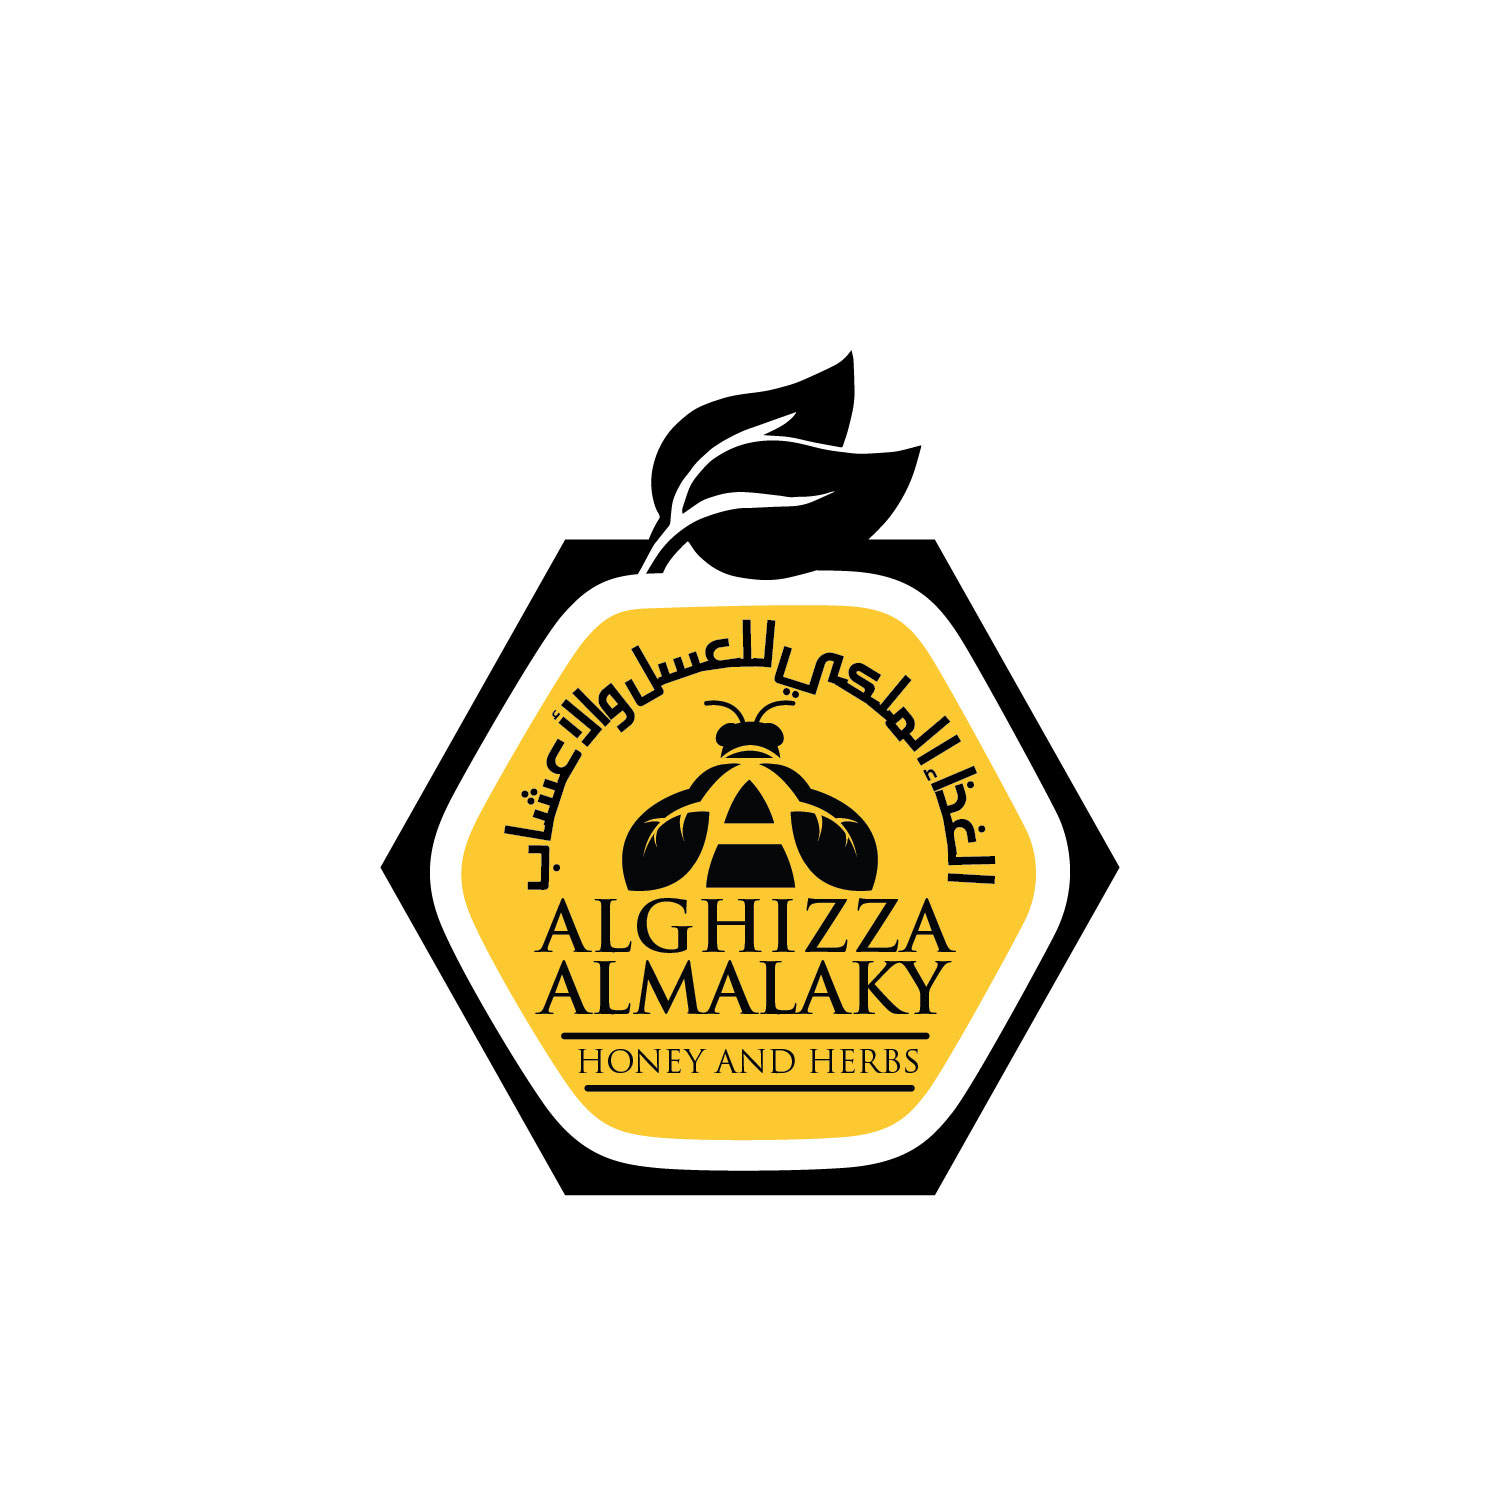 Logo Design by lagalag - Entry No. 54 in the Logo Design Contest Artistic Logo Design for ALGHIZZA ALMALAKY HONEY AND HERBS.